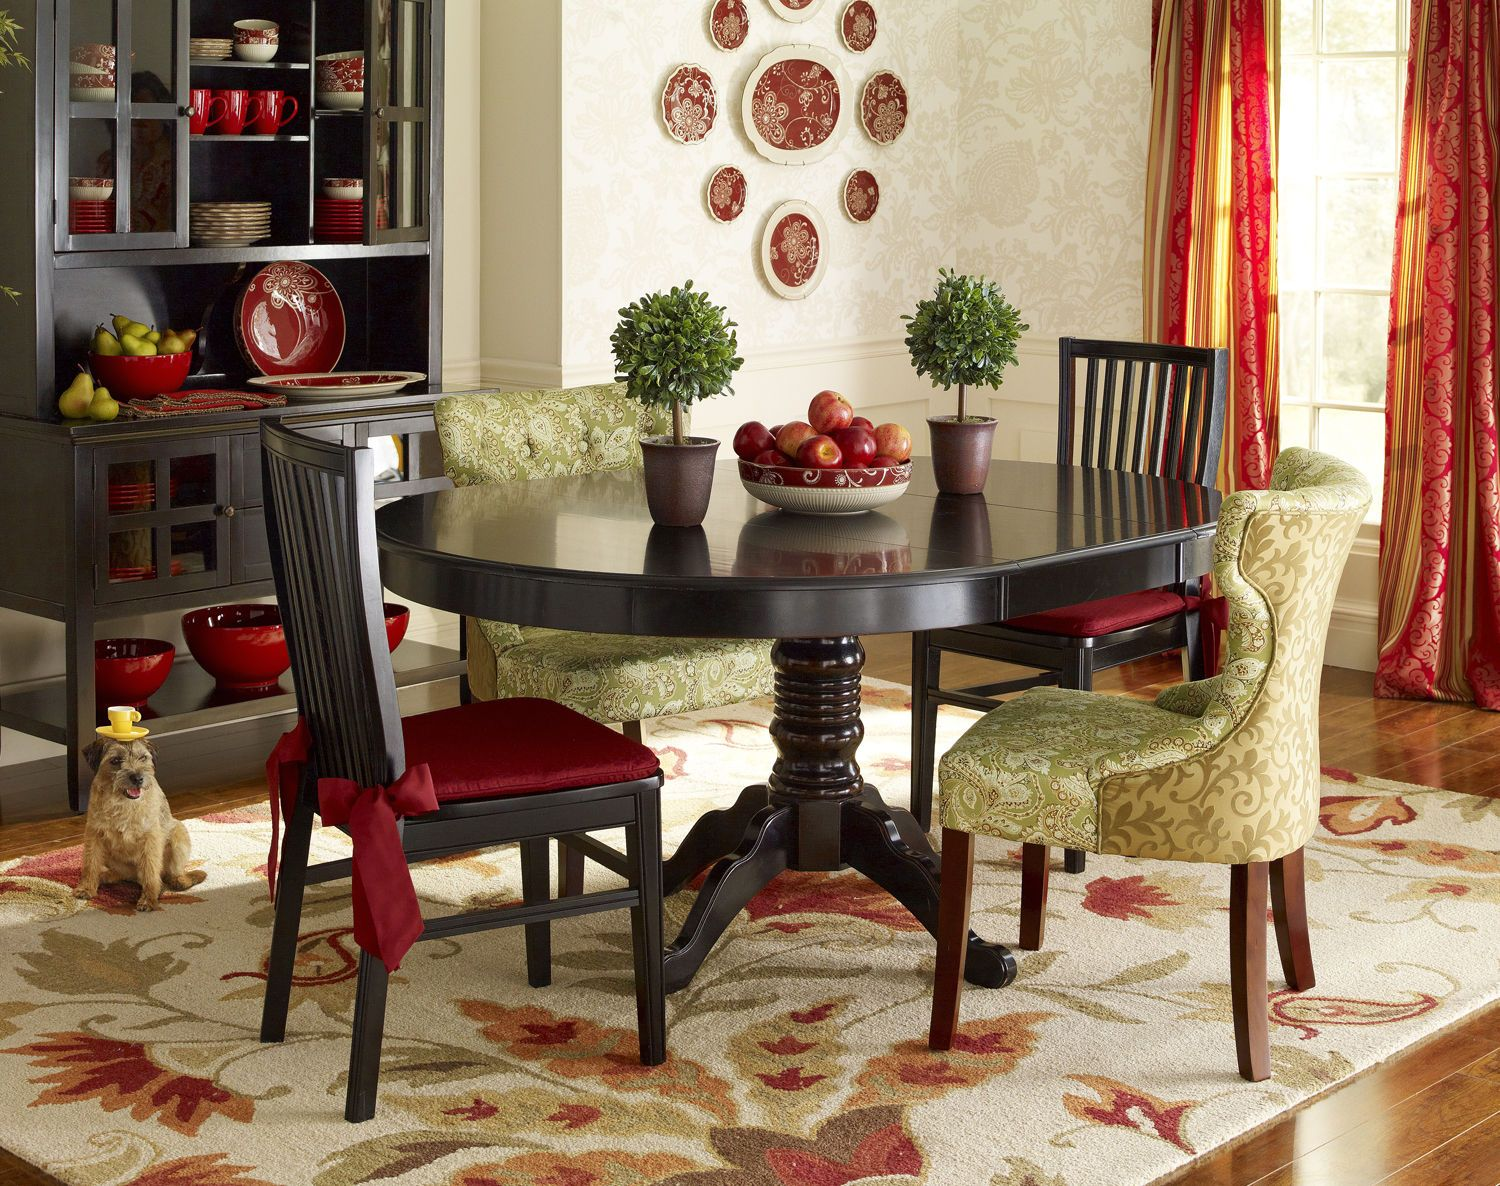 Industry West Osso Dining Table 2450$  242 Laval  Pinterest Adorable Pier One Dining Room Ideas Design Decoration